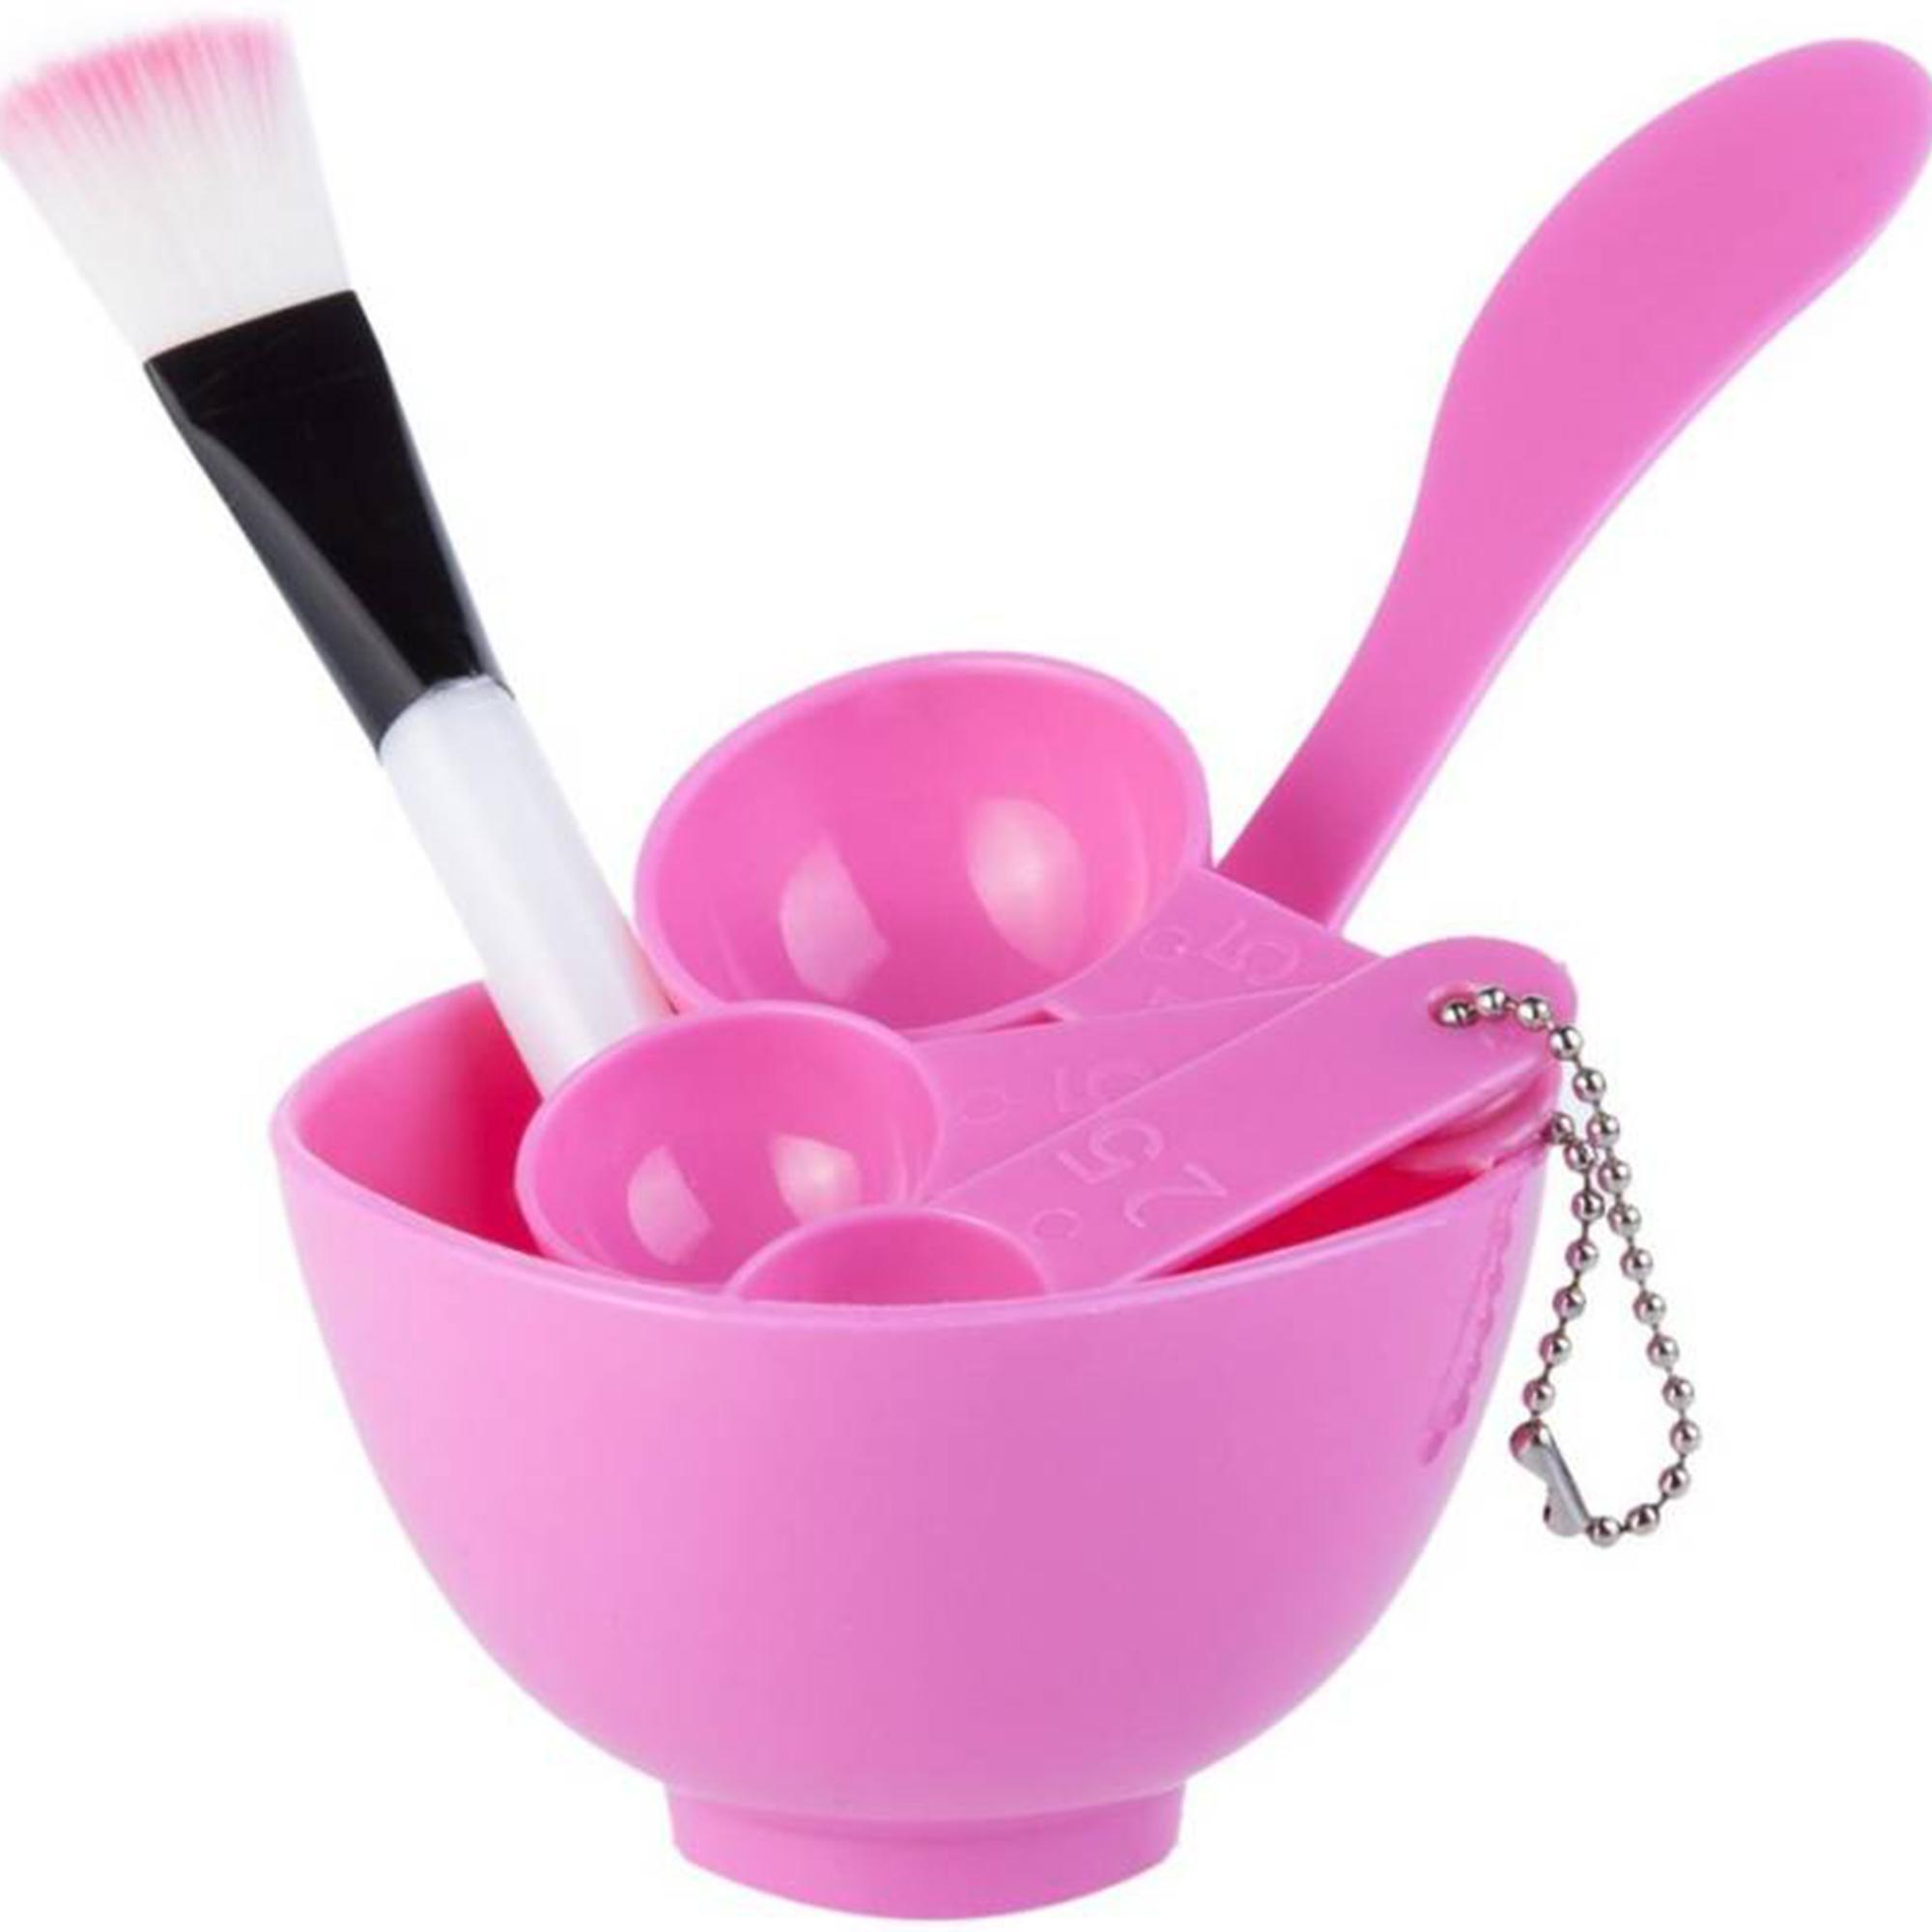 4 in 1 DIY Facial Beauty Mask Bowl with Stick Brush Set (Set of 6)